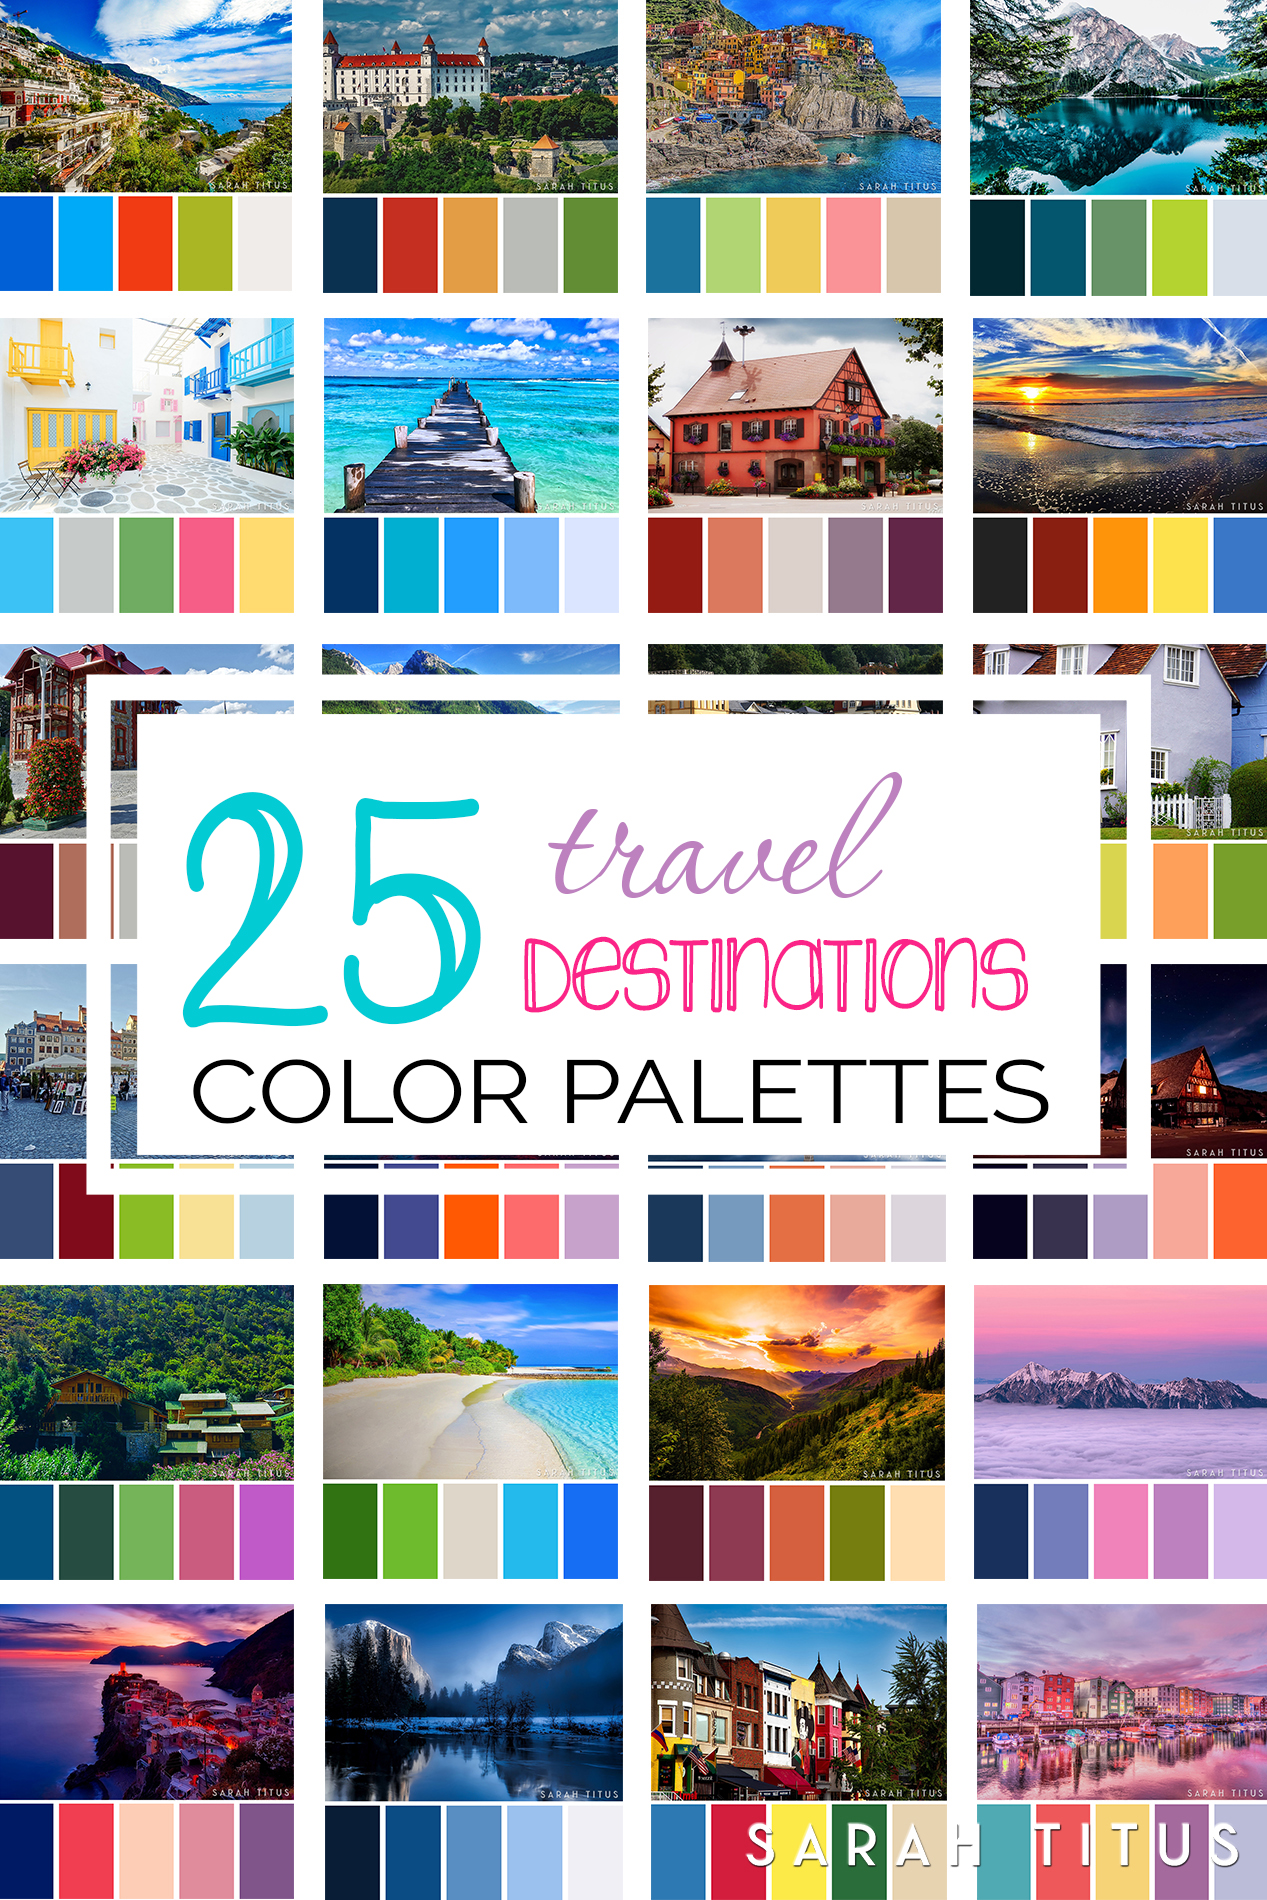 Planning a party, designing a printable, or just want to decorate your home? Get tons of inspiration from these 25 Best Travel Destinations Color Palettes! They're so gorgeous they will take your breath away. #colorpalettes #palettes #travelpalettes #colorfulpalettes #colormatch #colorsthatgowelltogether